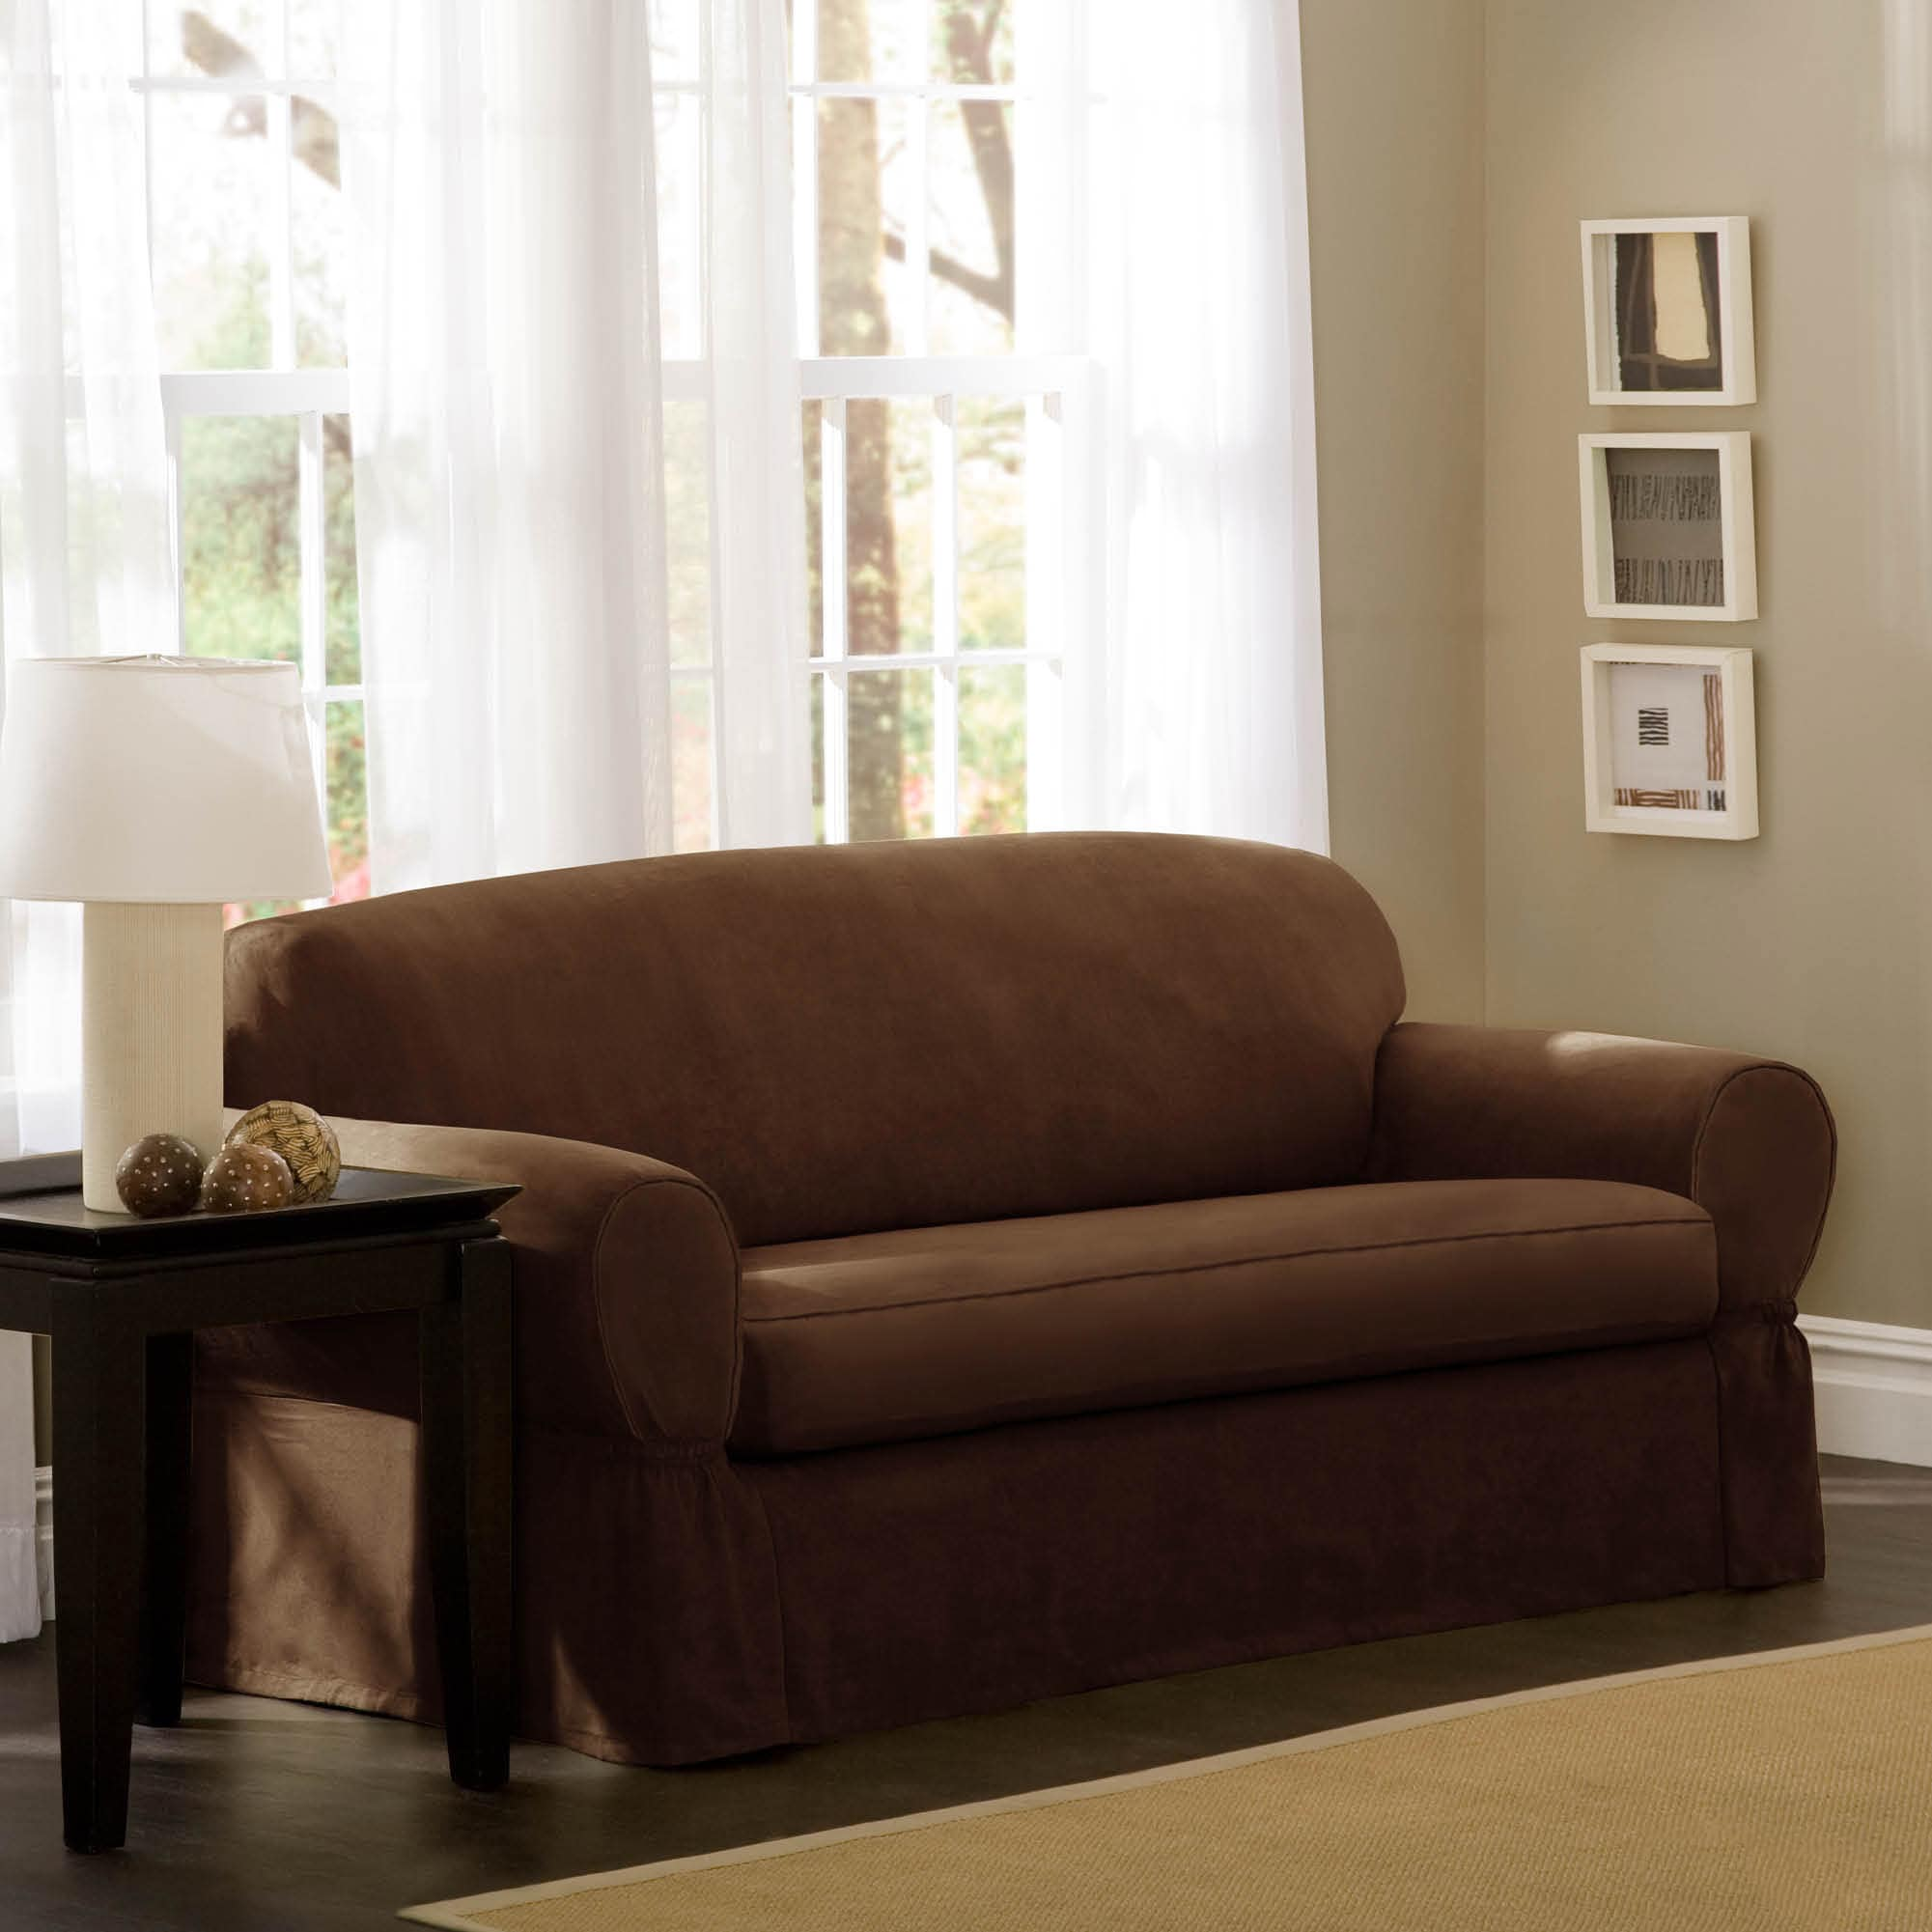 products fit zinfandel red great solid by velvet gale loveseat collection stretch form home plush bay slipcovers cheap velvetplush slipcover